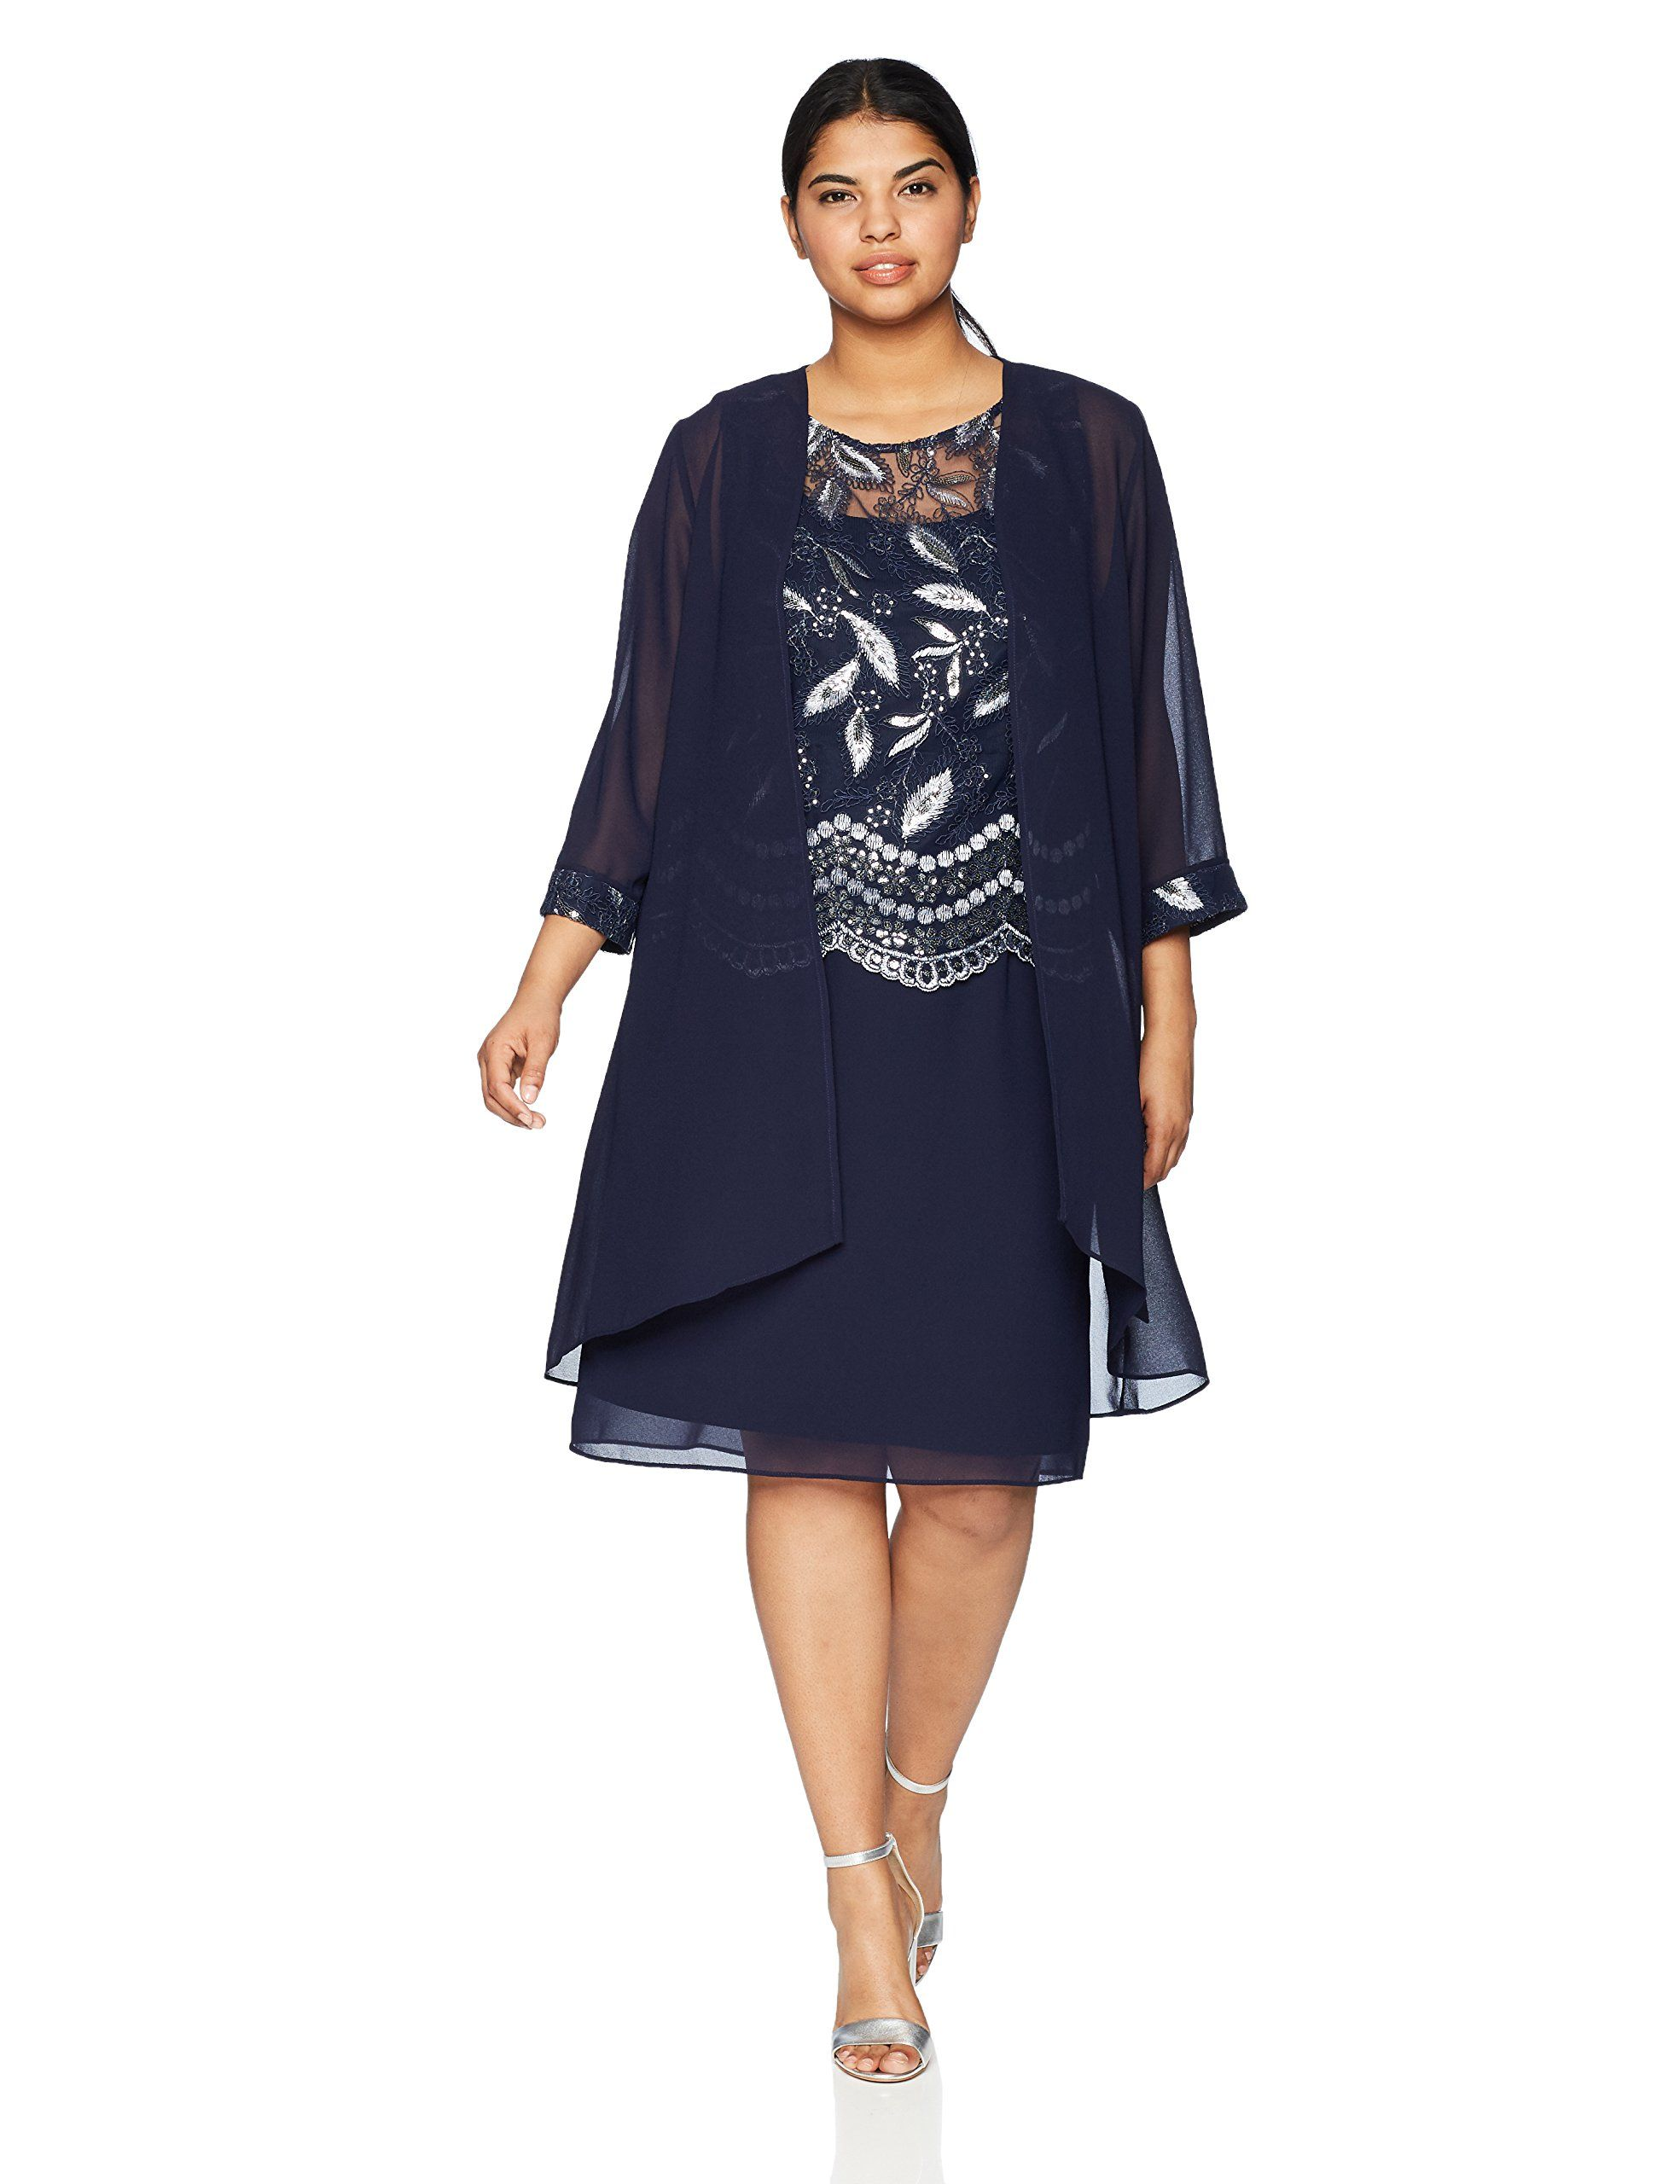 feee524183 Le Bos Womens Plus Size Duster Embroidered Jacket Dress Navy 16W    Read  more at the image link-affiliate link.  dresses